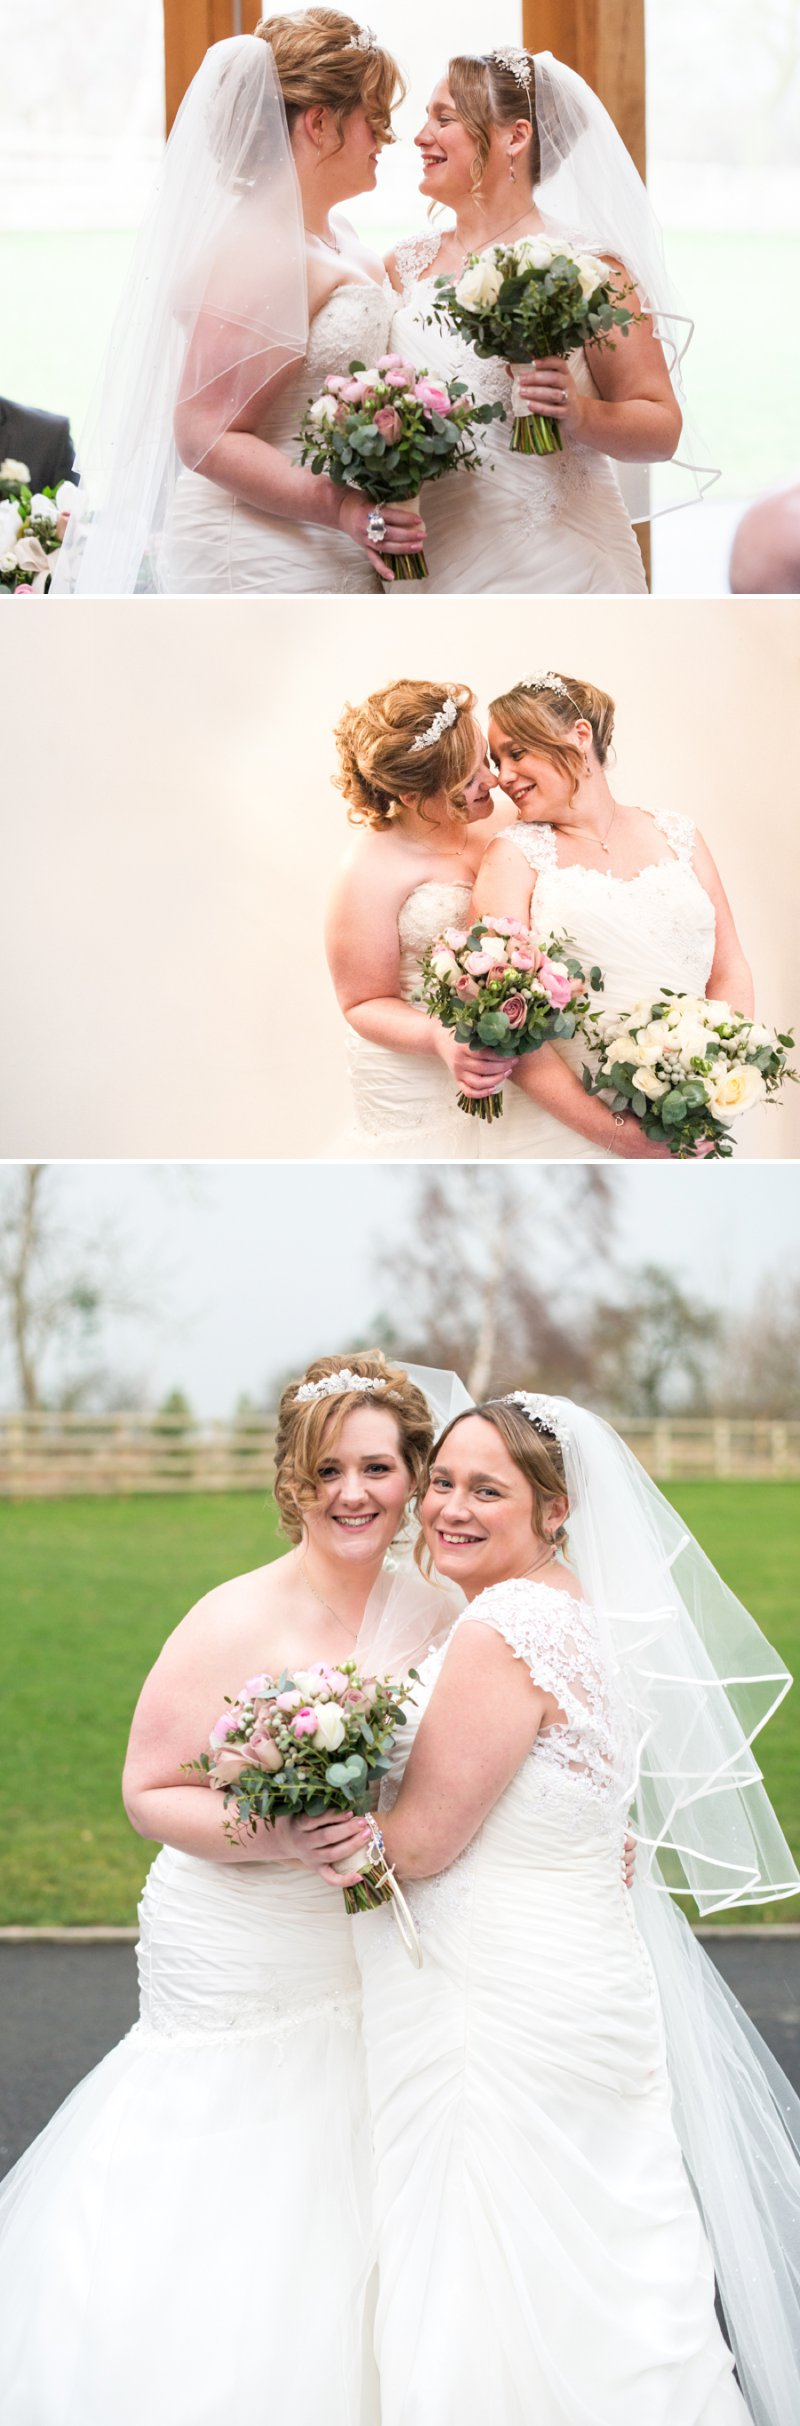 Rustic Same Sex Wedding At Mythe Barn With Brides In Traditional Ivory Gowns By Mori Lee And Donna Lee Designs With Bridesmaids In Dusky Pink And Sage Green 8